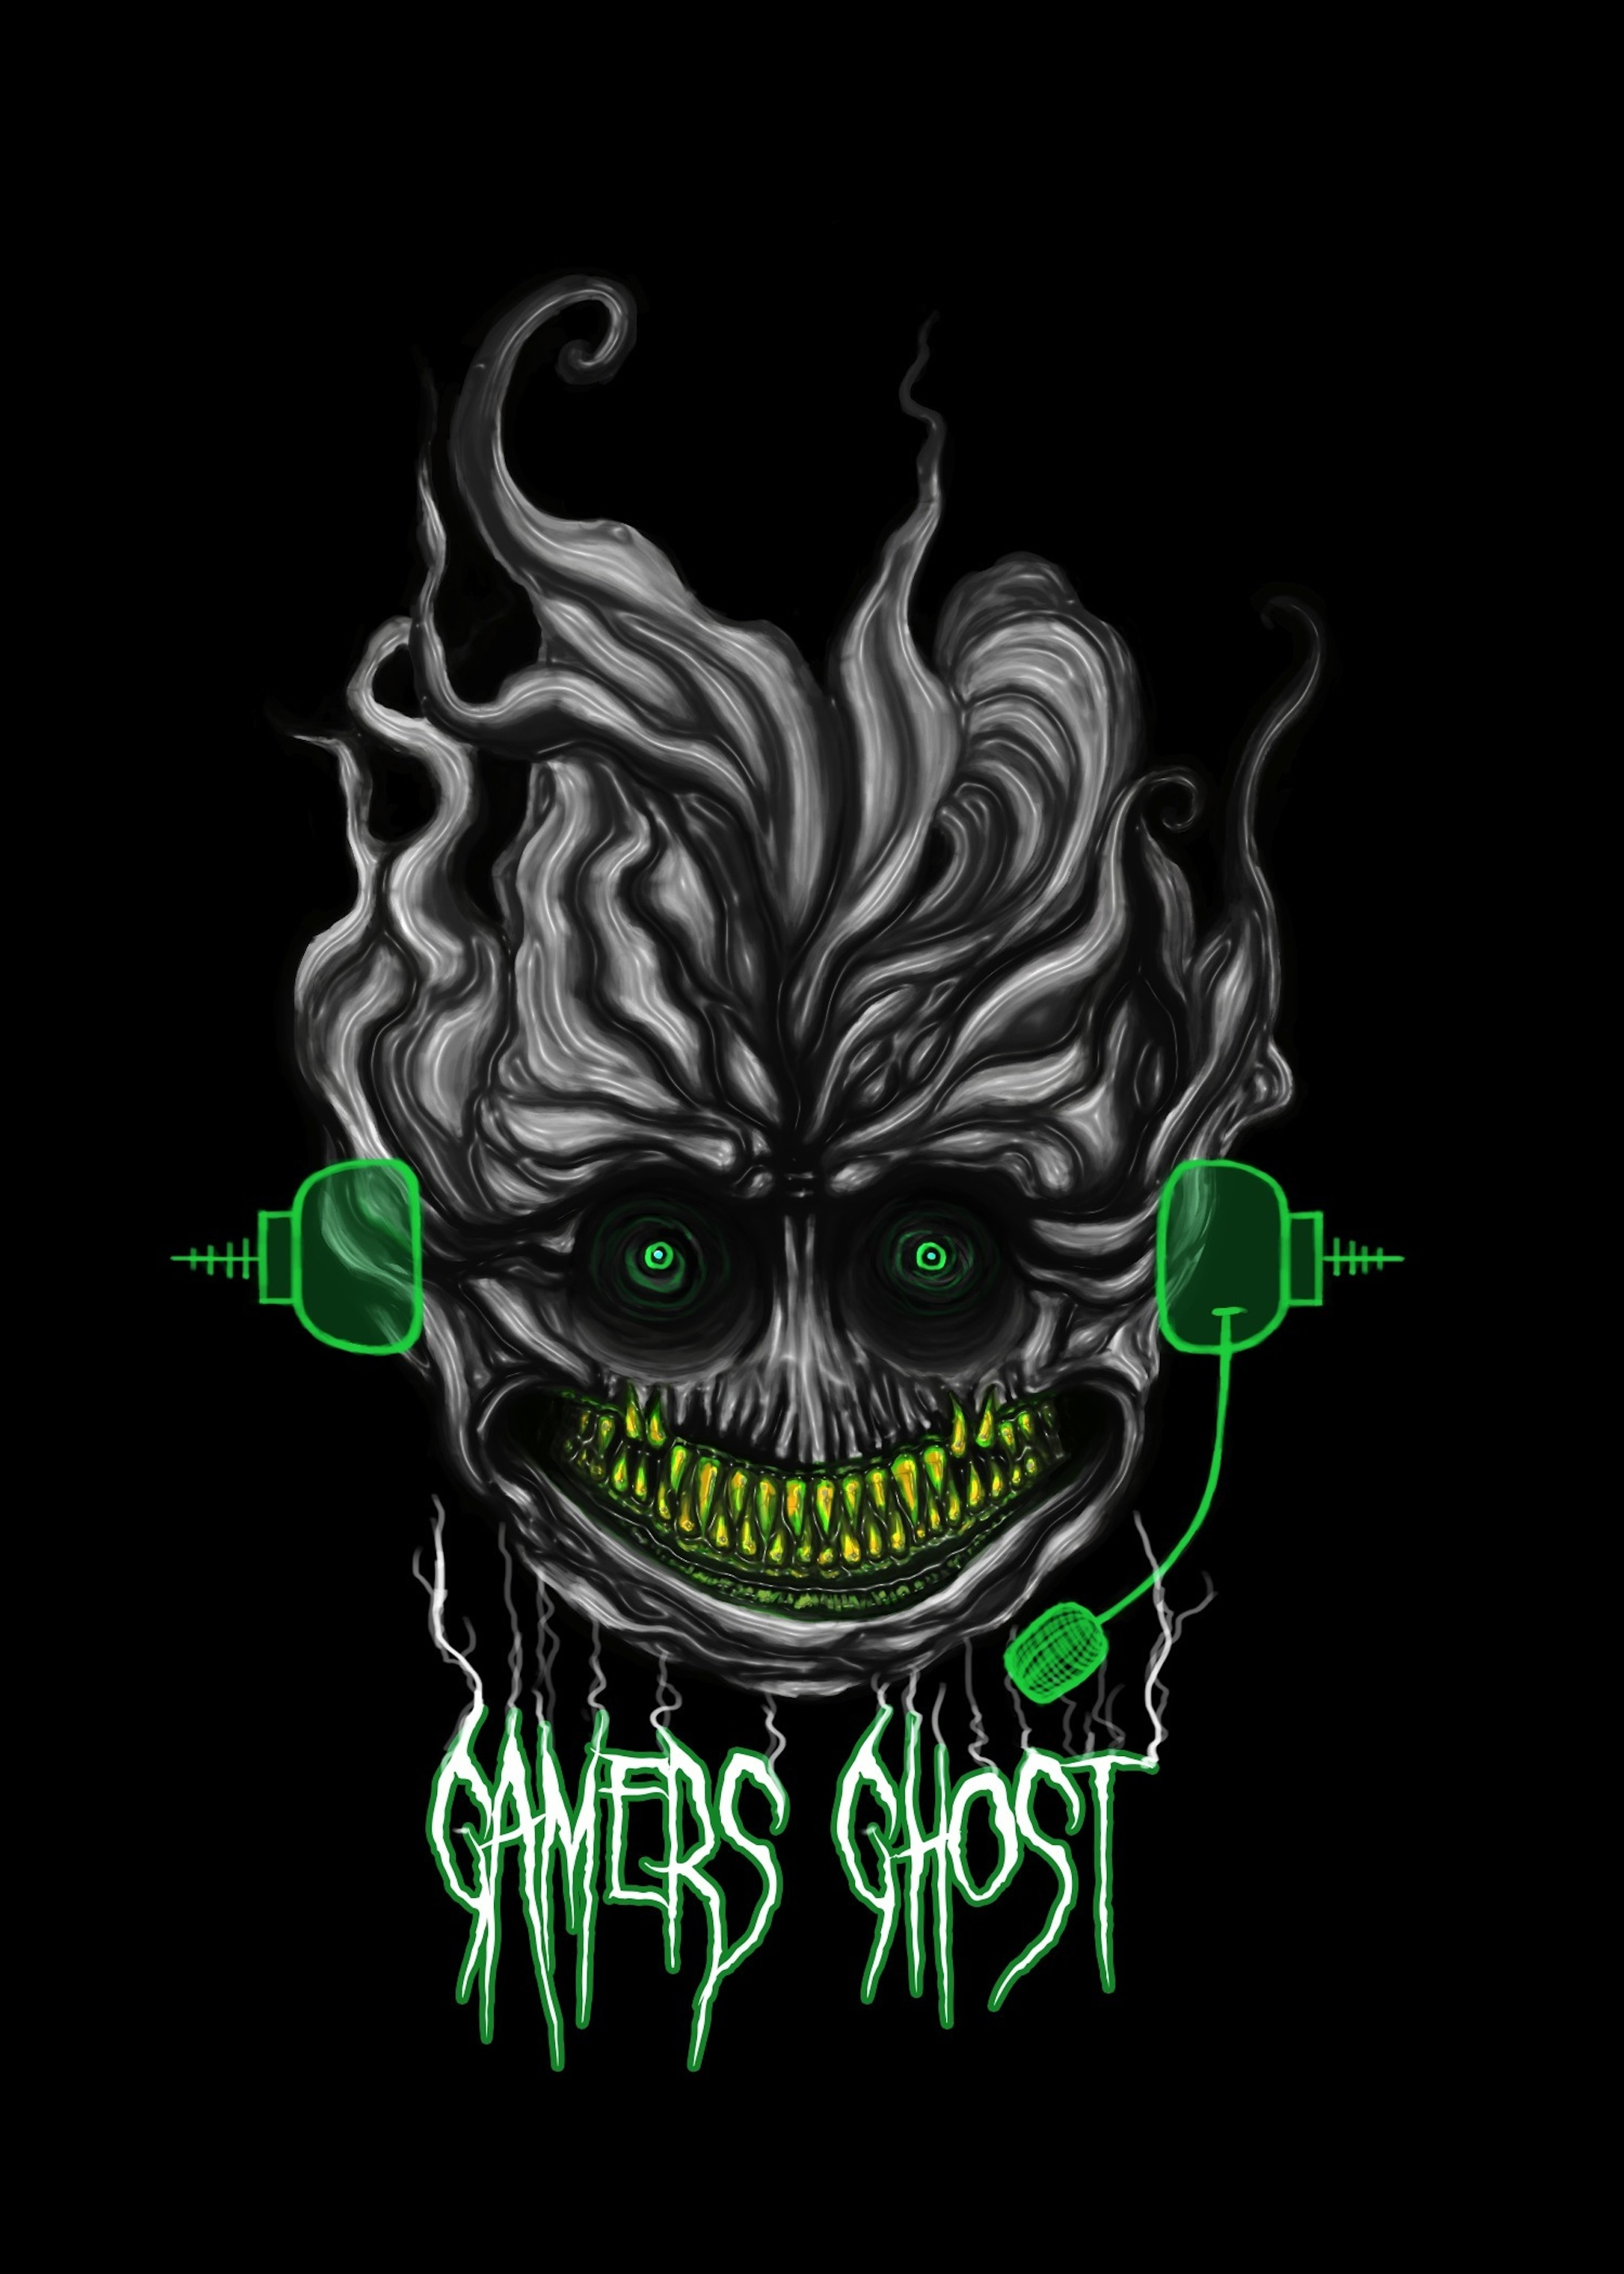 The Gamers Ghost